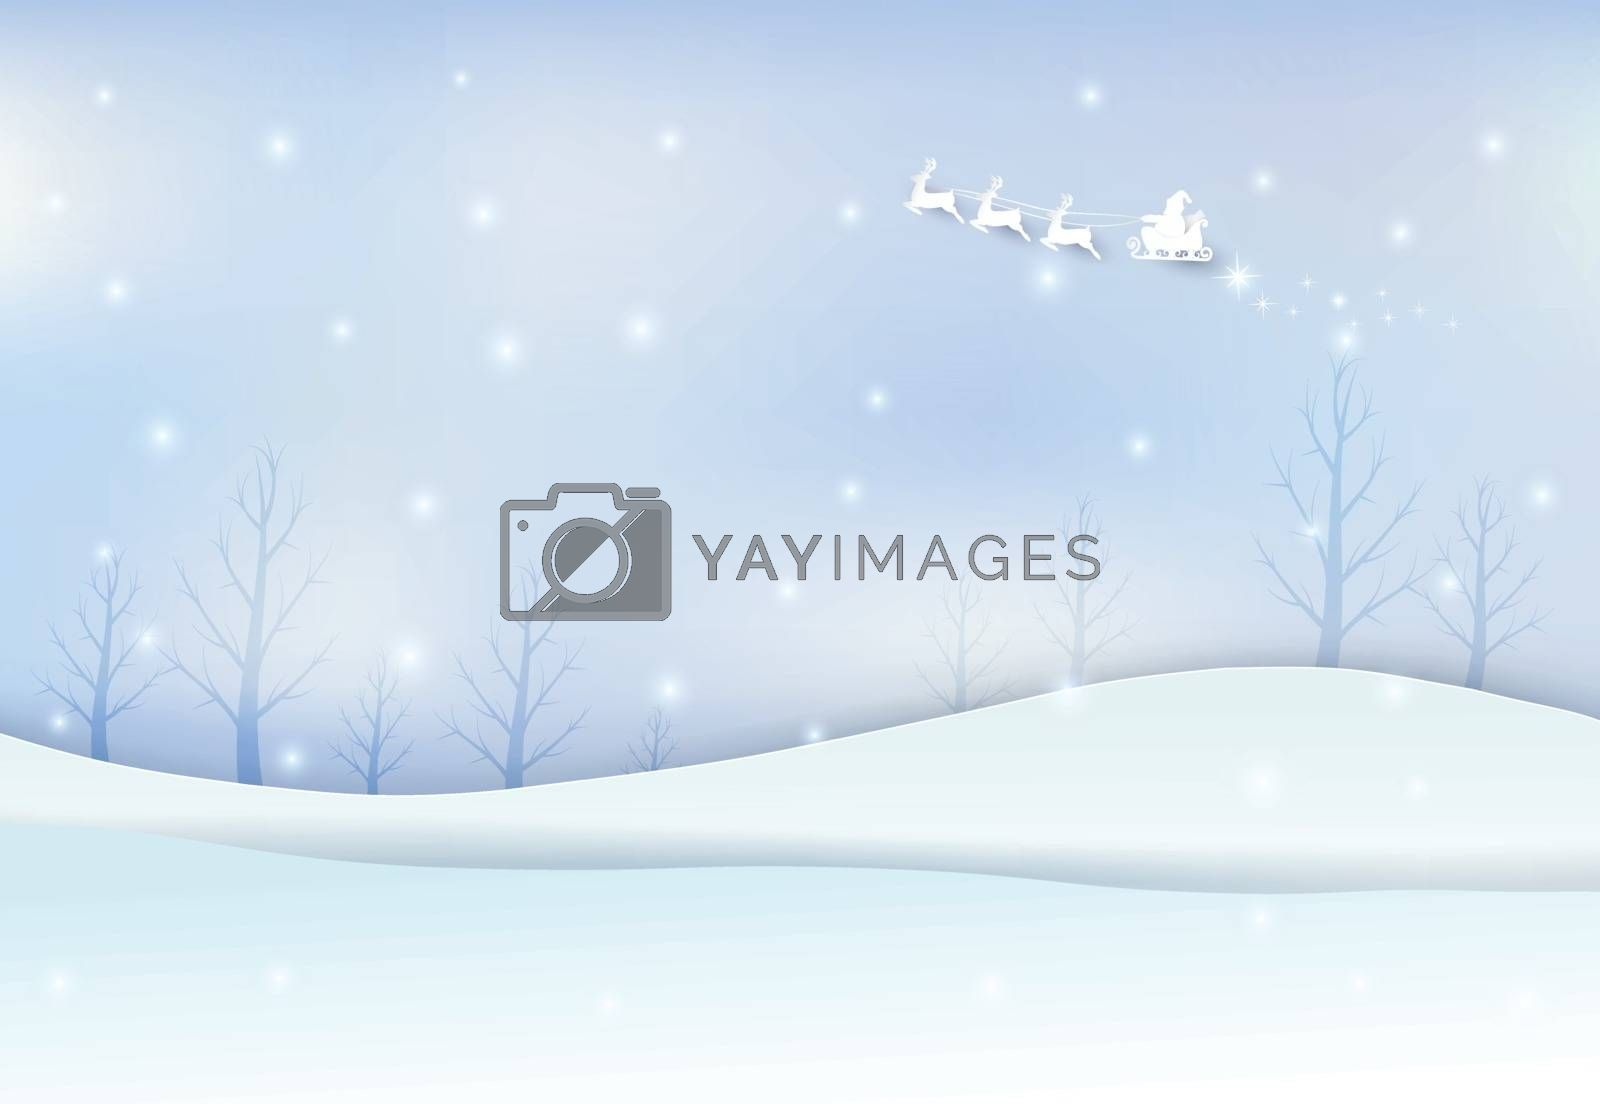 Winter holiday santa with snow on blue sky background. Christmas season paper art style illustration.